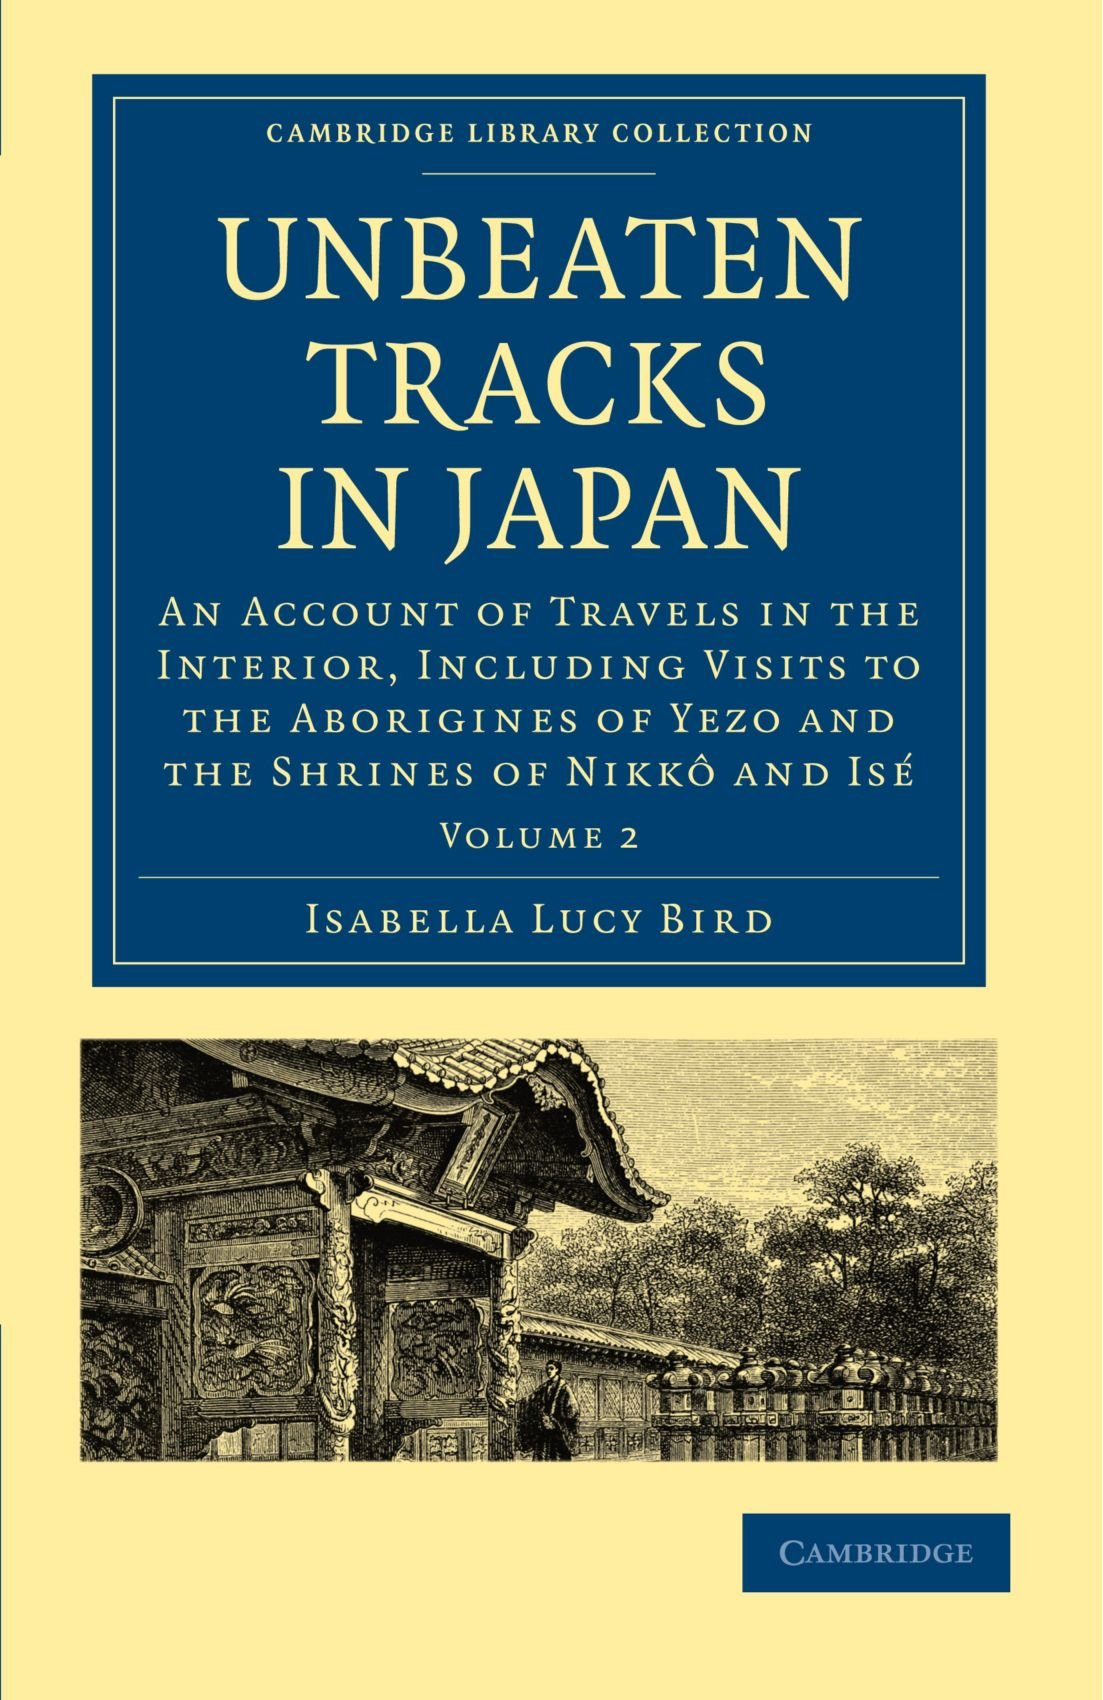 Unbeaten Tracks in Japan: An Account of Travels in the Interior, Including Visits to the Aborigines of Yezo and the Shrines of Nikkô and Isé ... Collection - Travel and Exploration in Asia) pdf epub